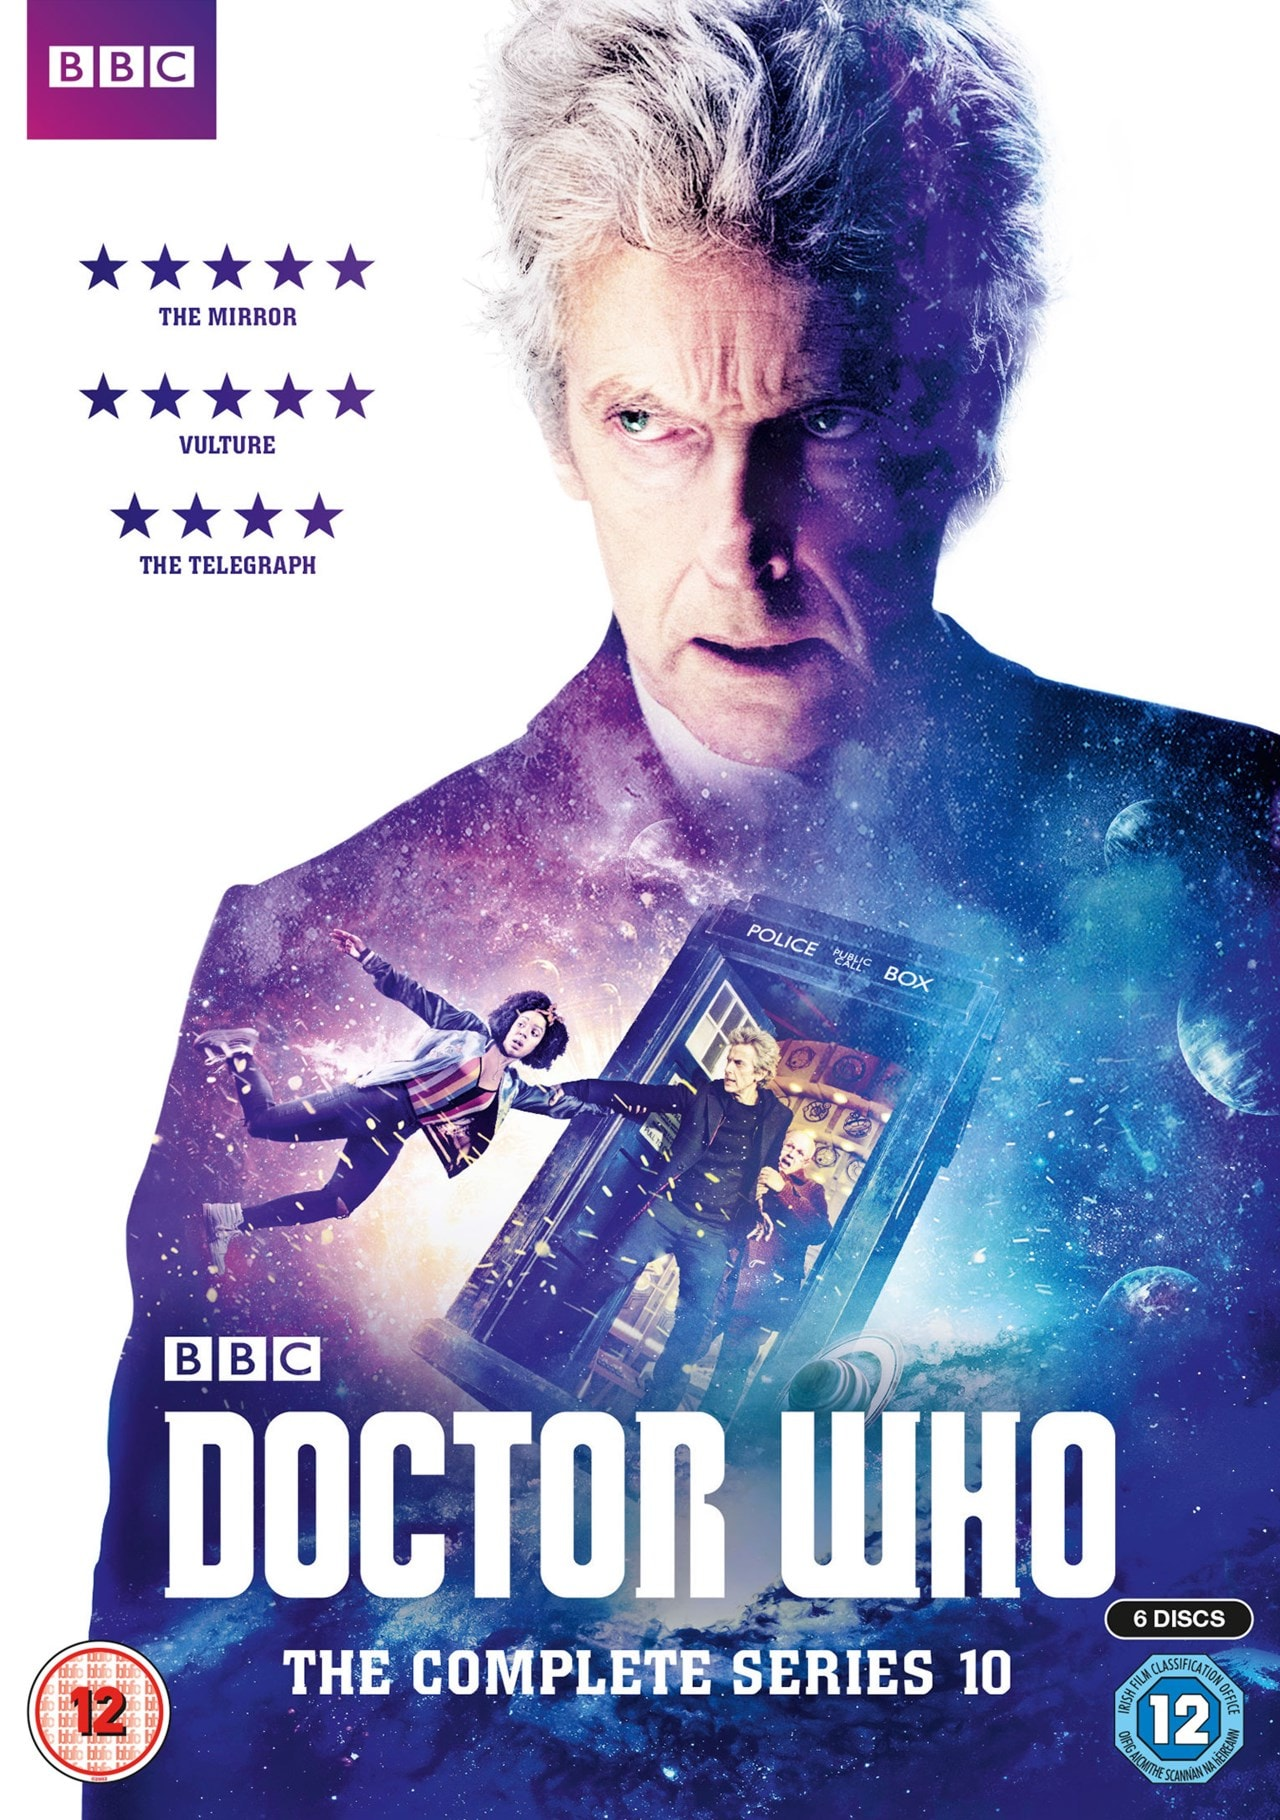 Doctor Who: The Complete Series 10 - 1